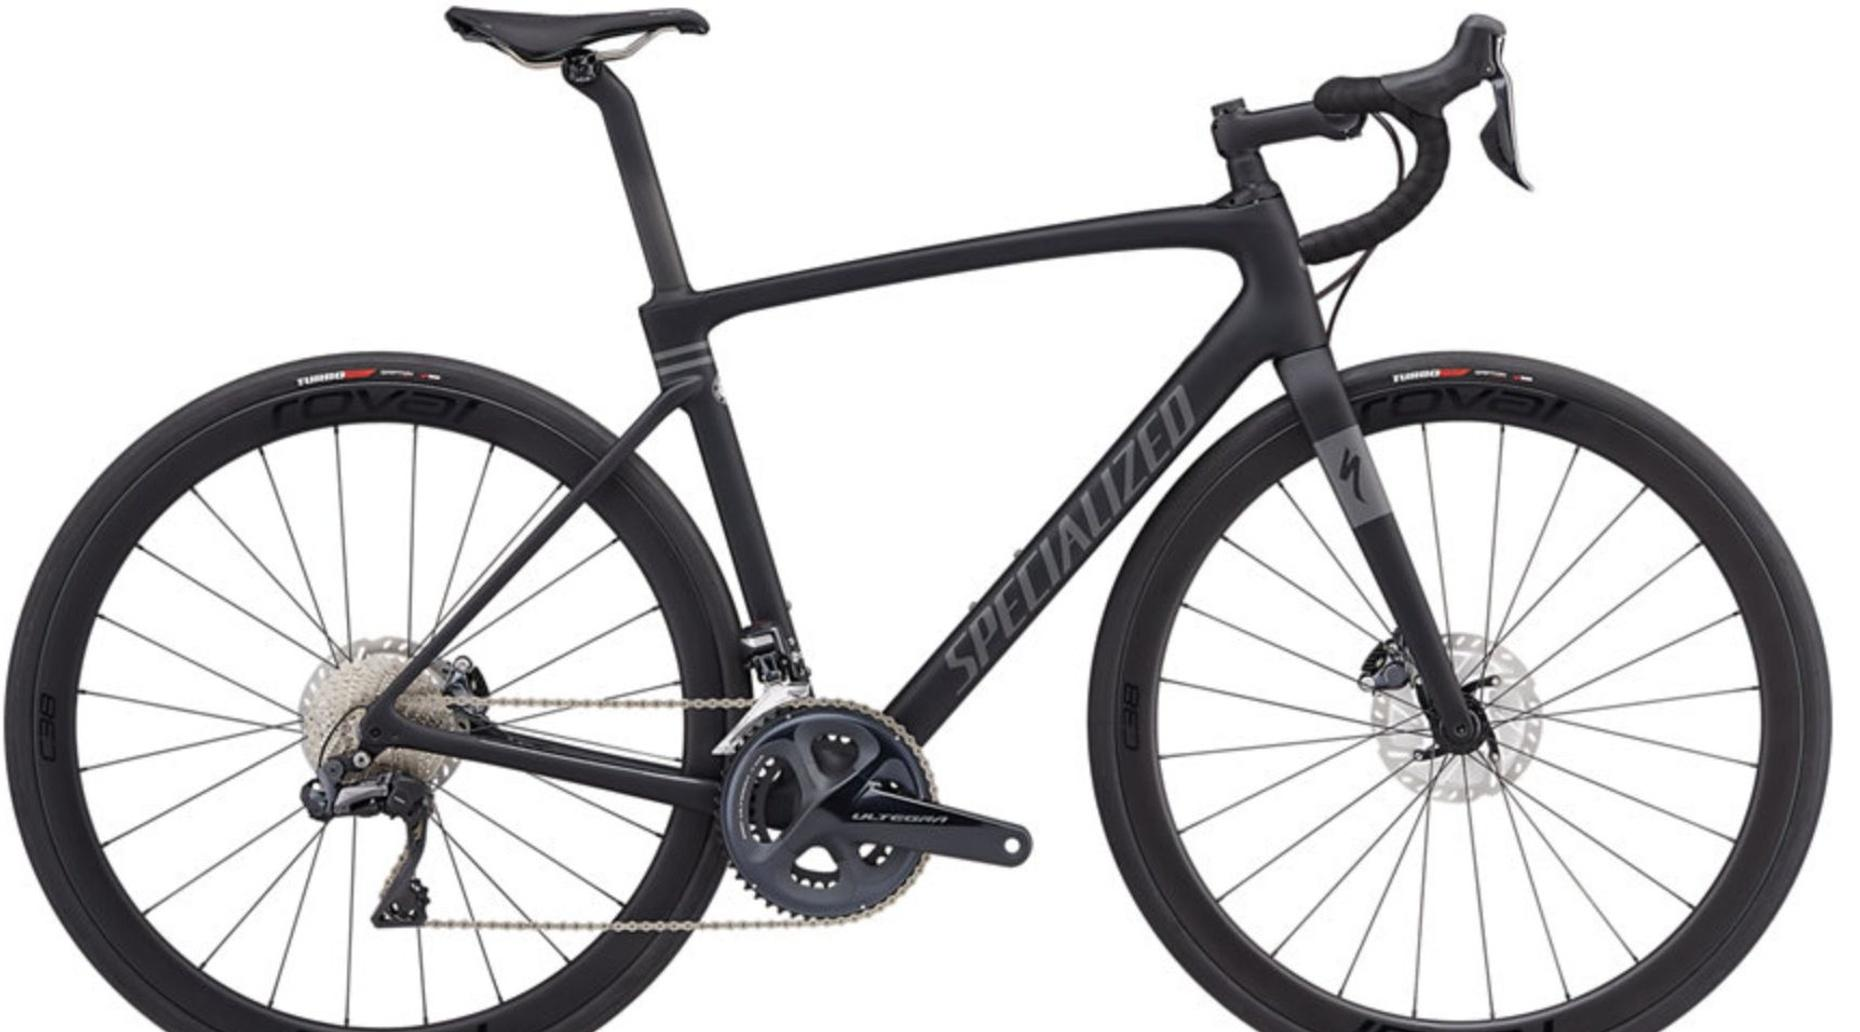 Road Bike Rental. Expert Level carbon